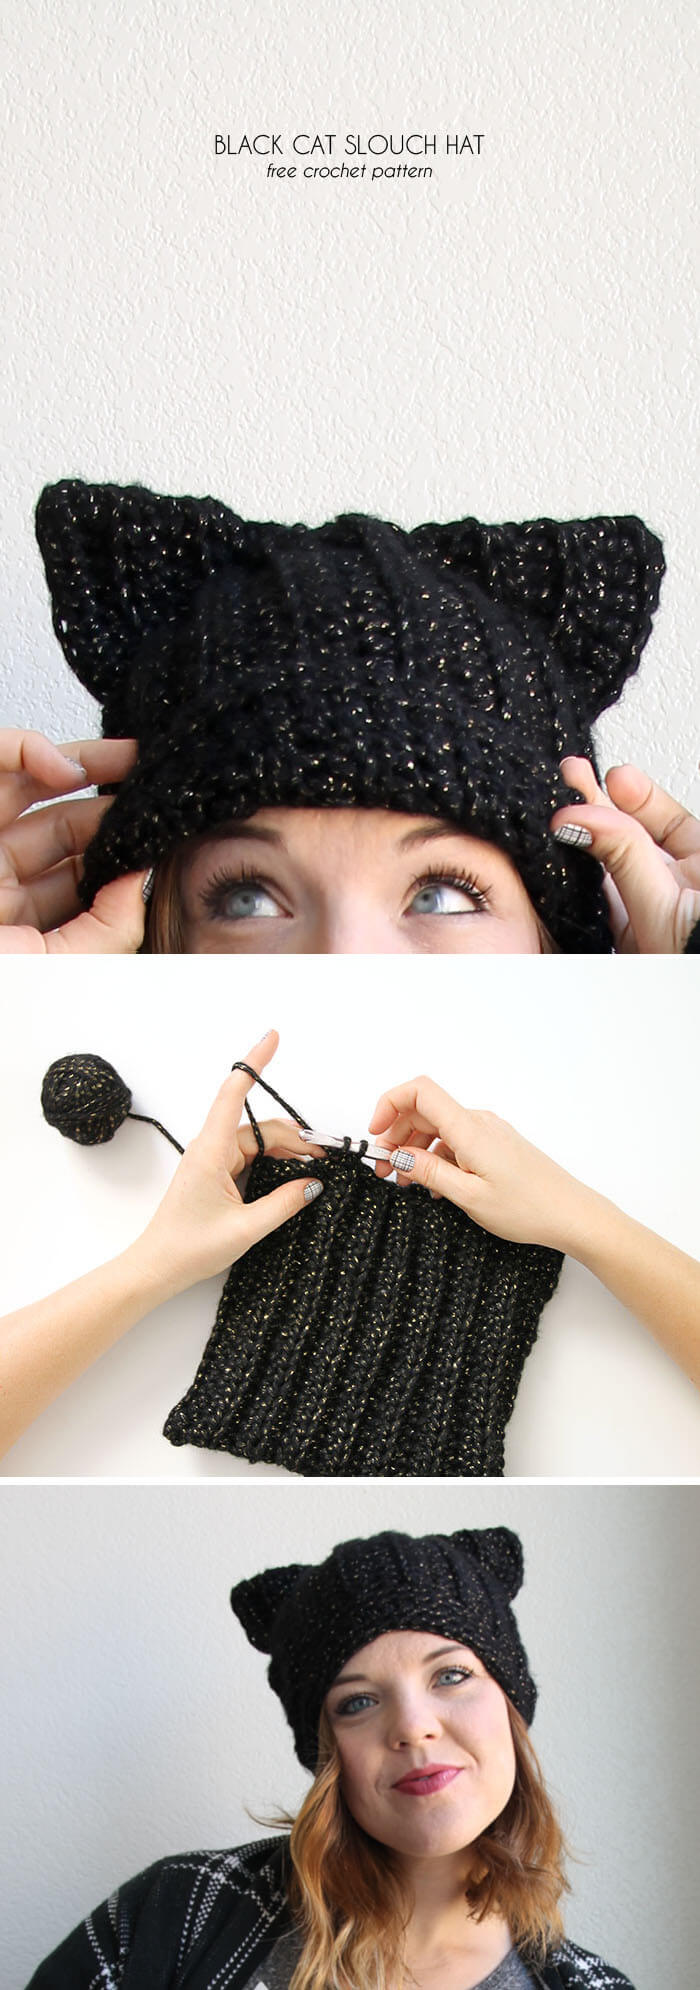 Black Cat Slouch Hat - Free Crochet Cat Hat Pattern - Persia Lou cd8d8a40217